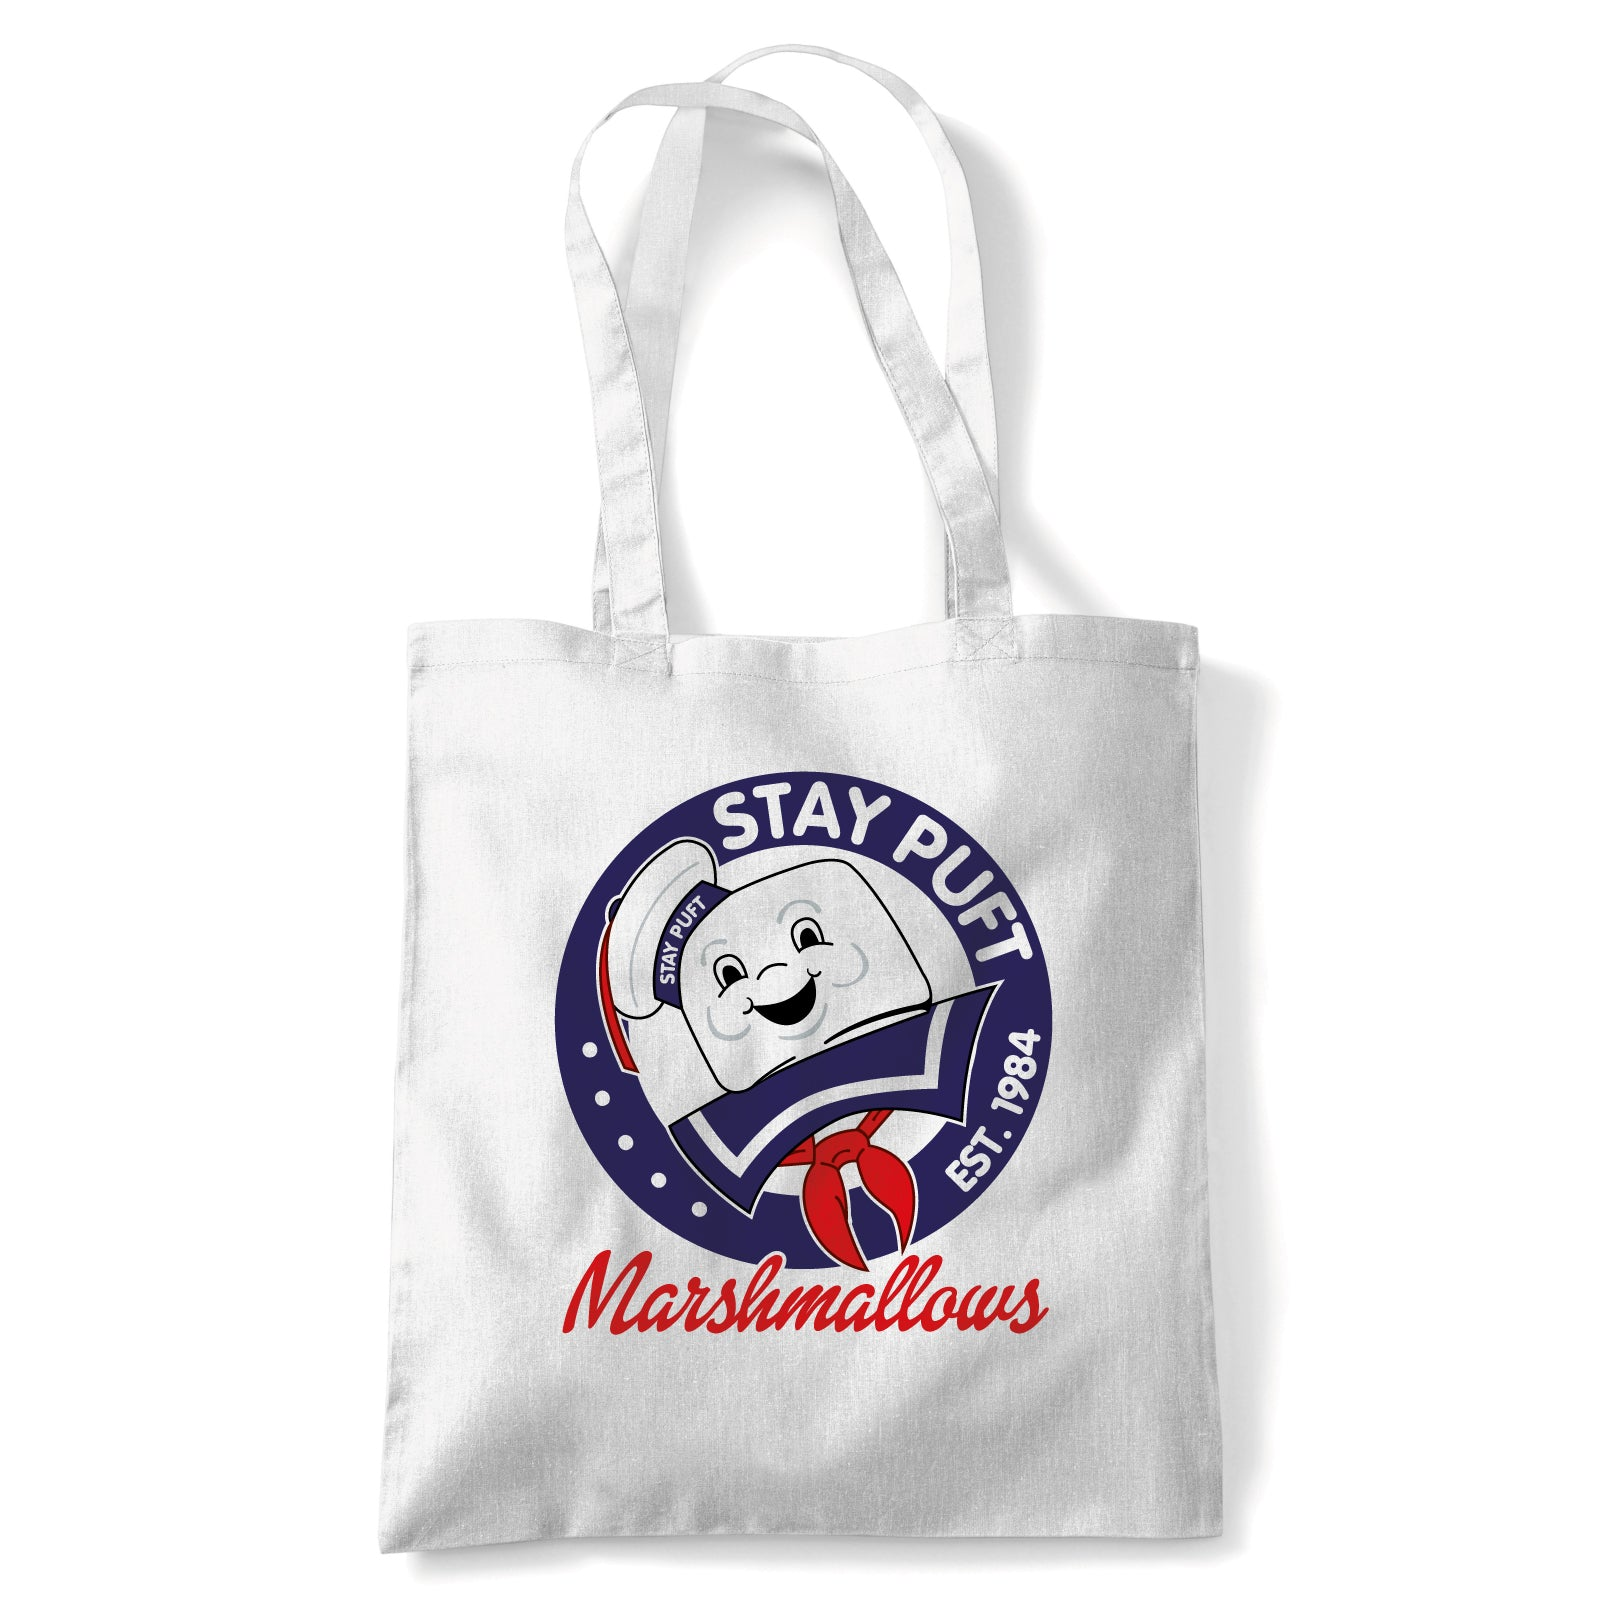 Stay Puft Movie Inspired Funny Tote | Action Adventure Horror Sci-Fi Thriller Comedy Spy | Reusable Shopping Cotton Canvas Long Handled Natural Shopper Eco-Friendly Fashion